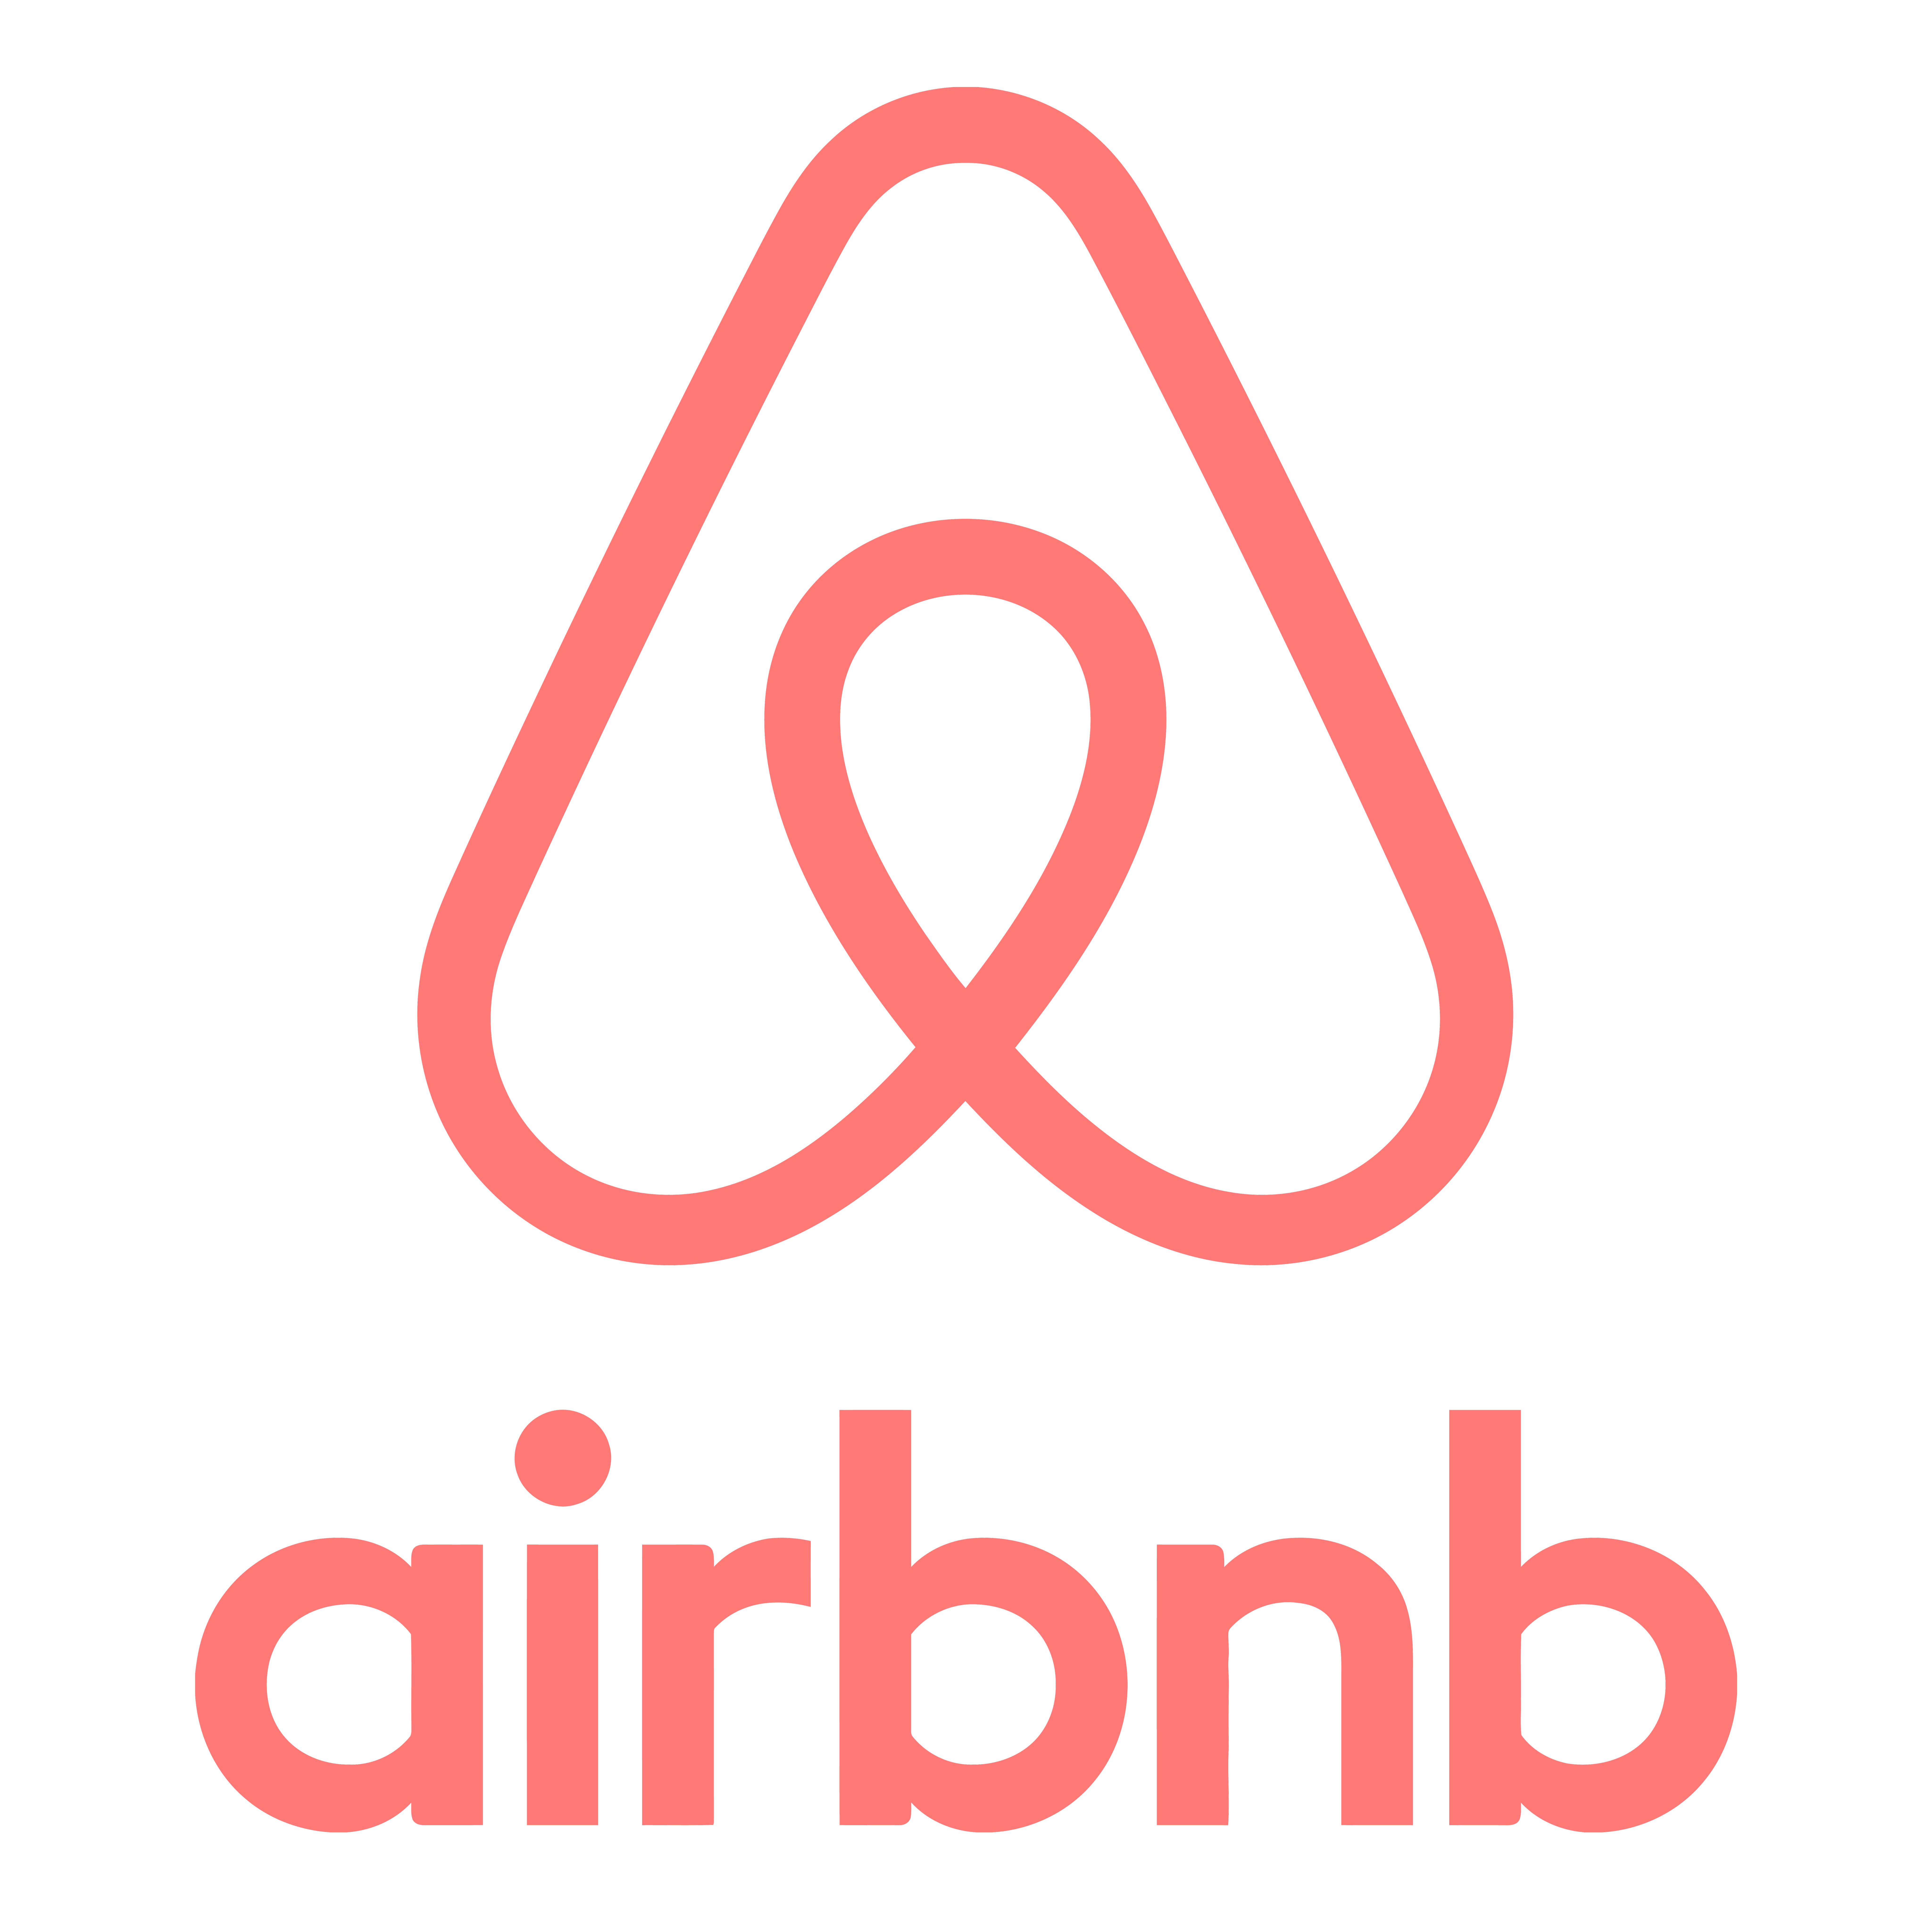 AirBnB's mission and vision statements